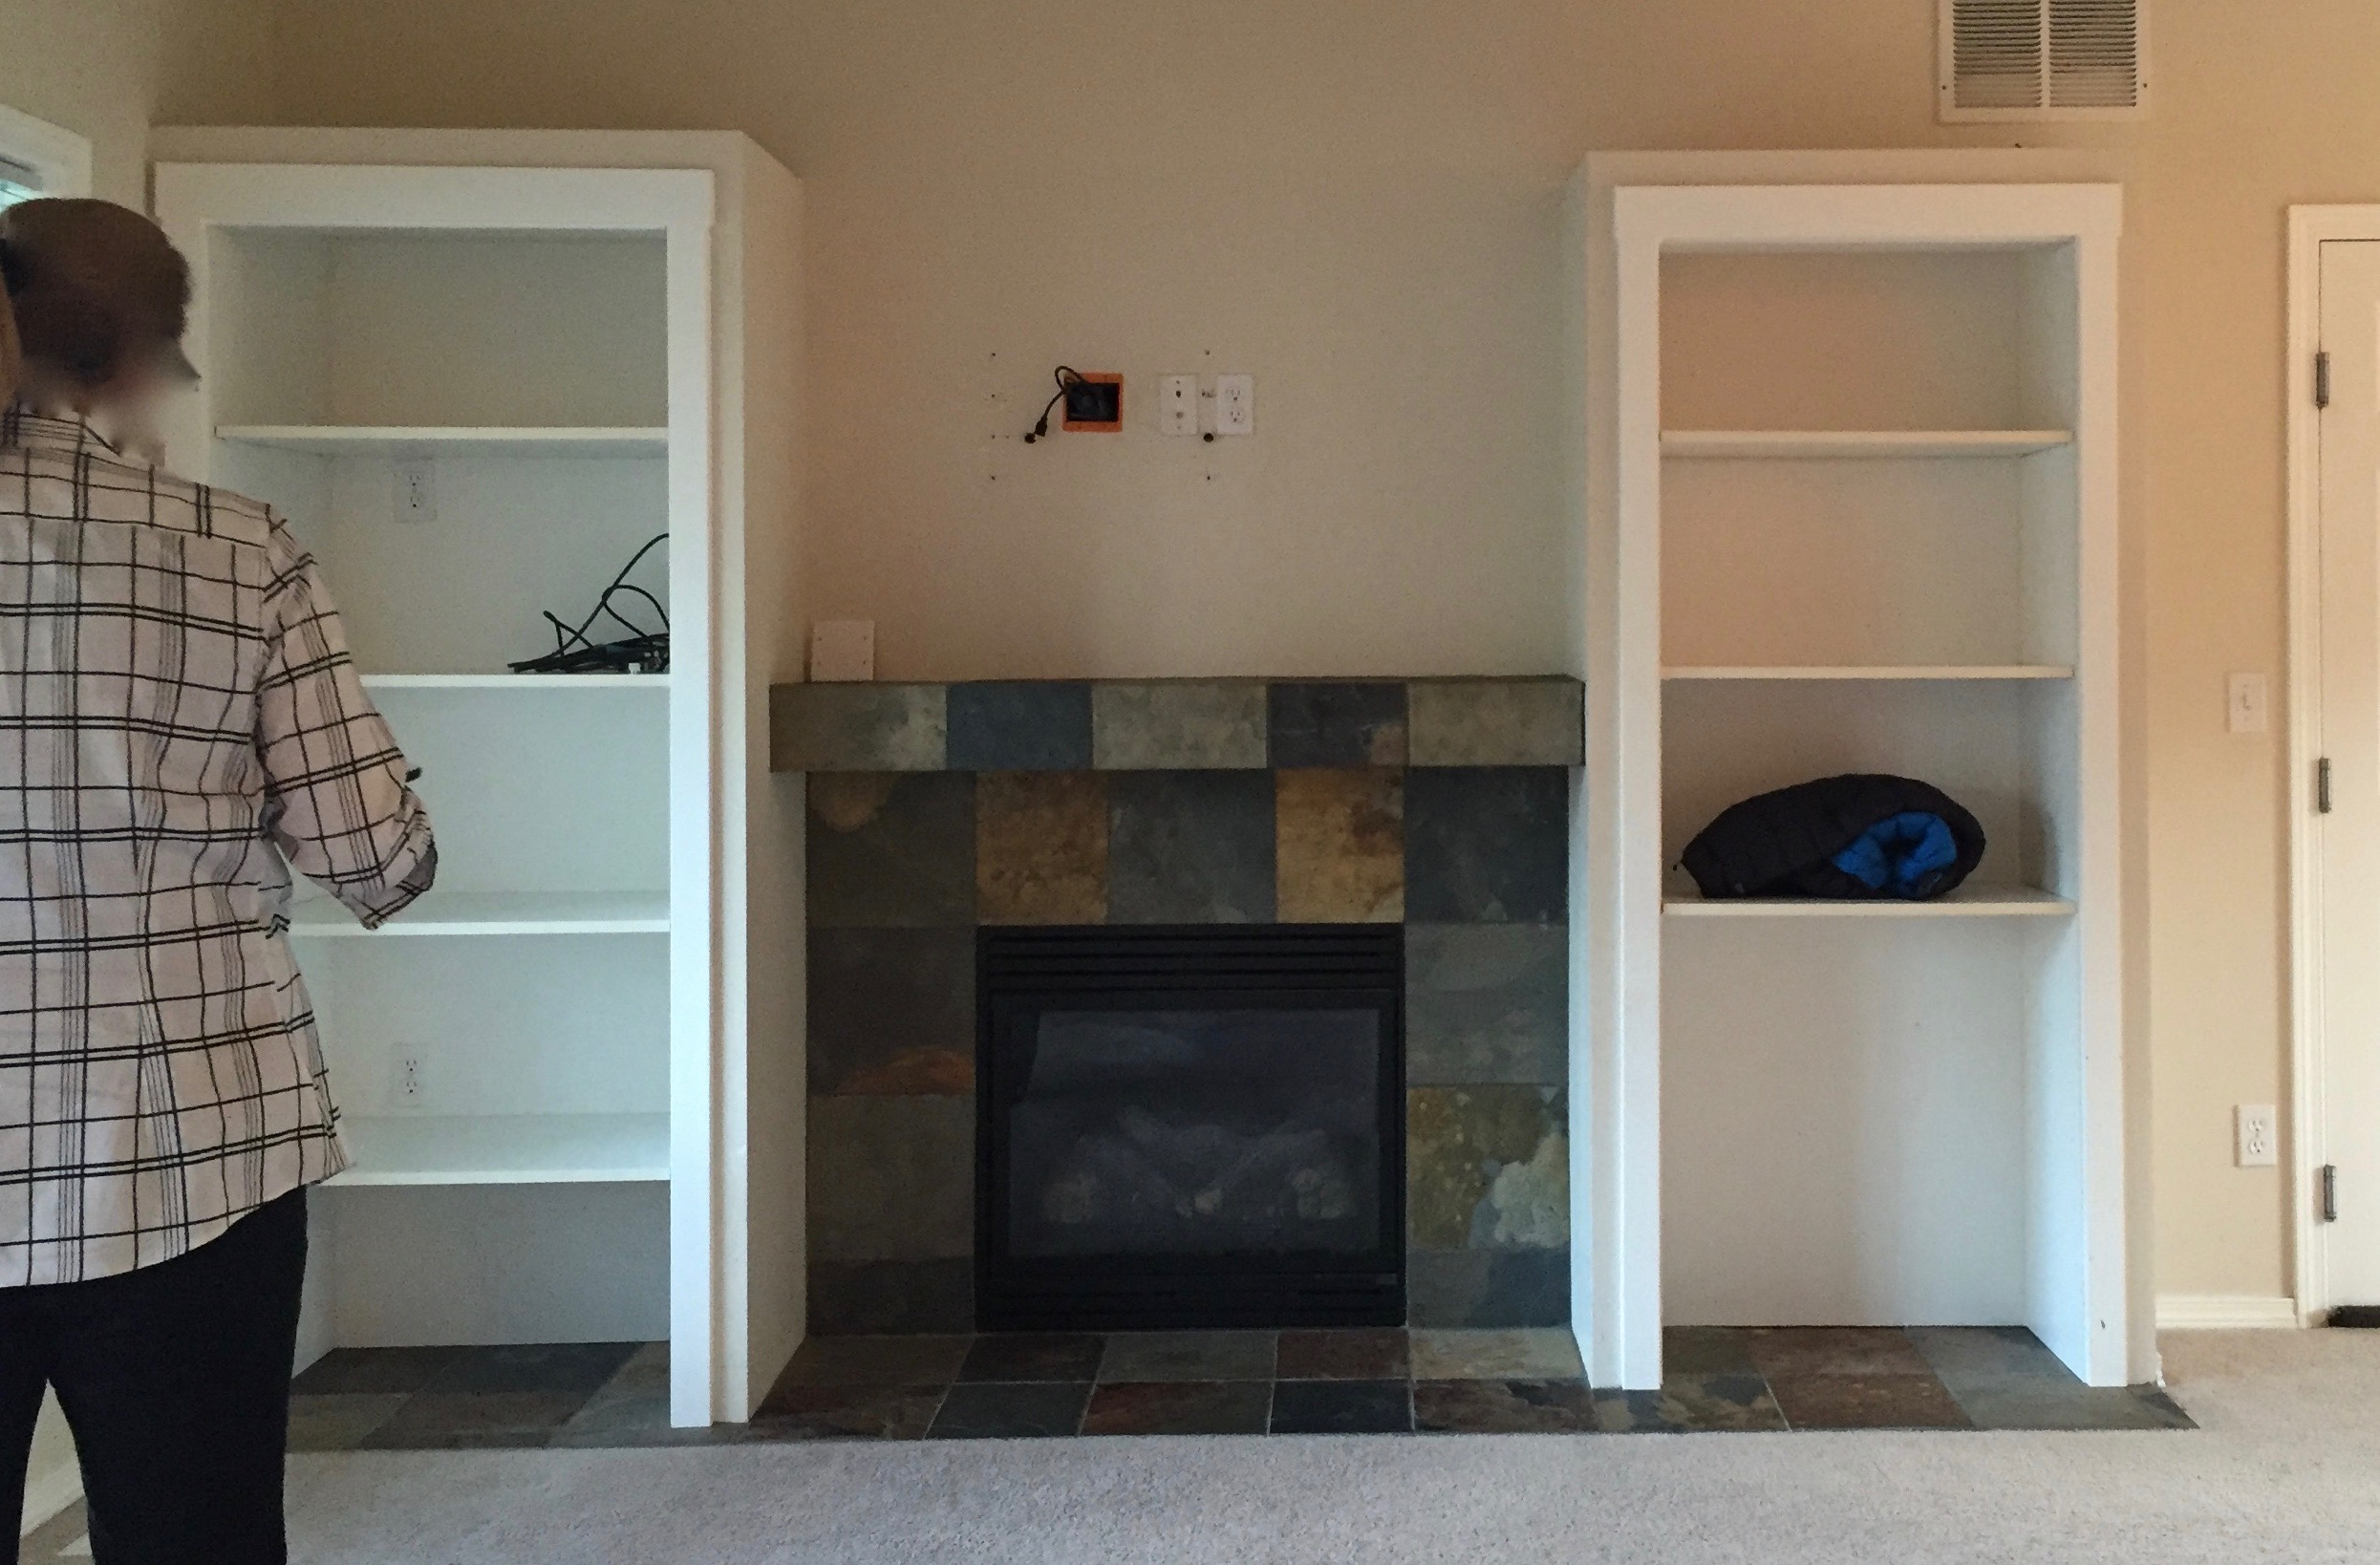 Before: Built-in shelves, old fireplace, old dirty carpet, yuck!